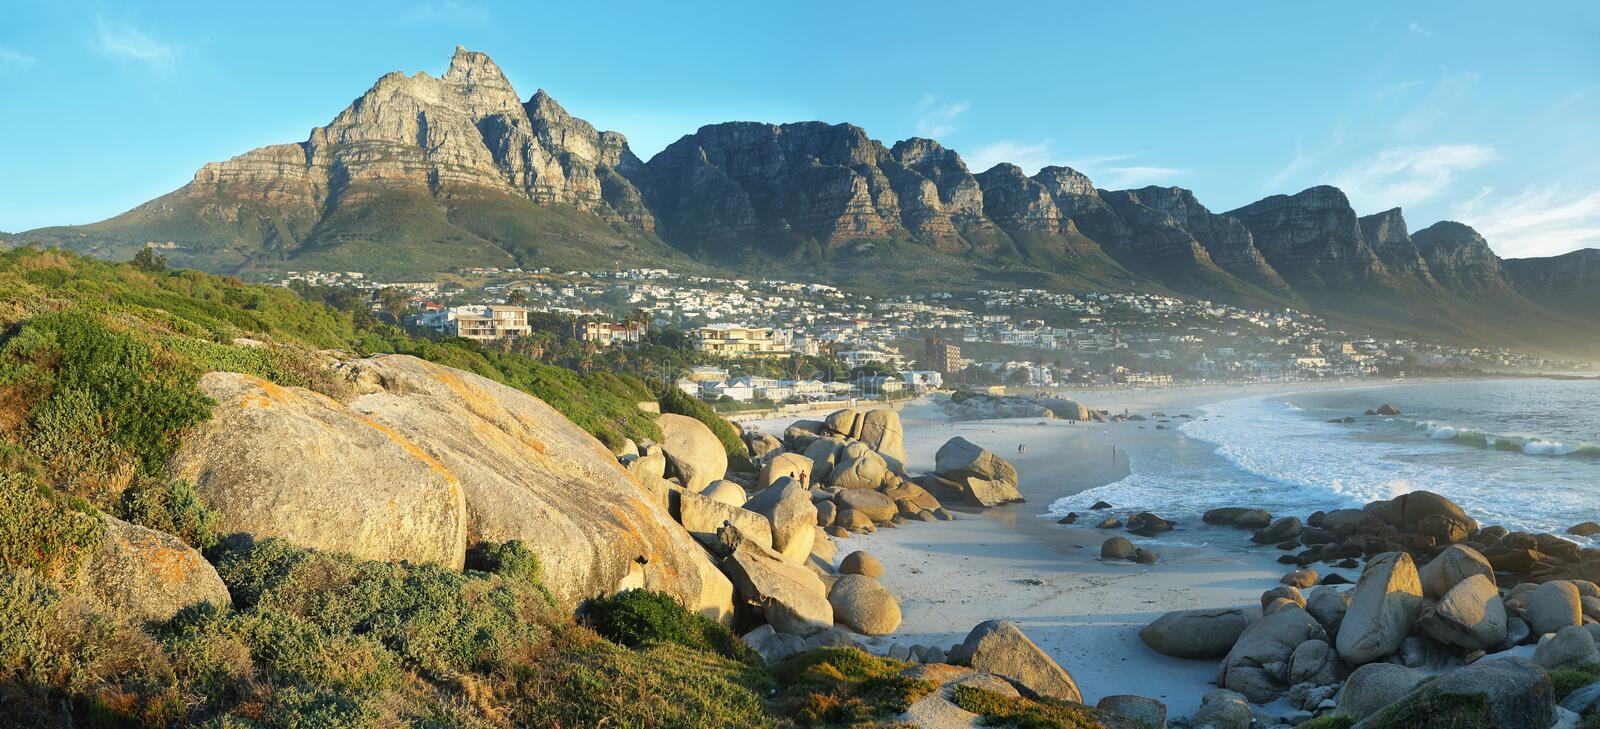 Camps Bay Beach in Cape Town, South Africa royalty free stock image